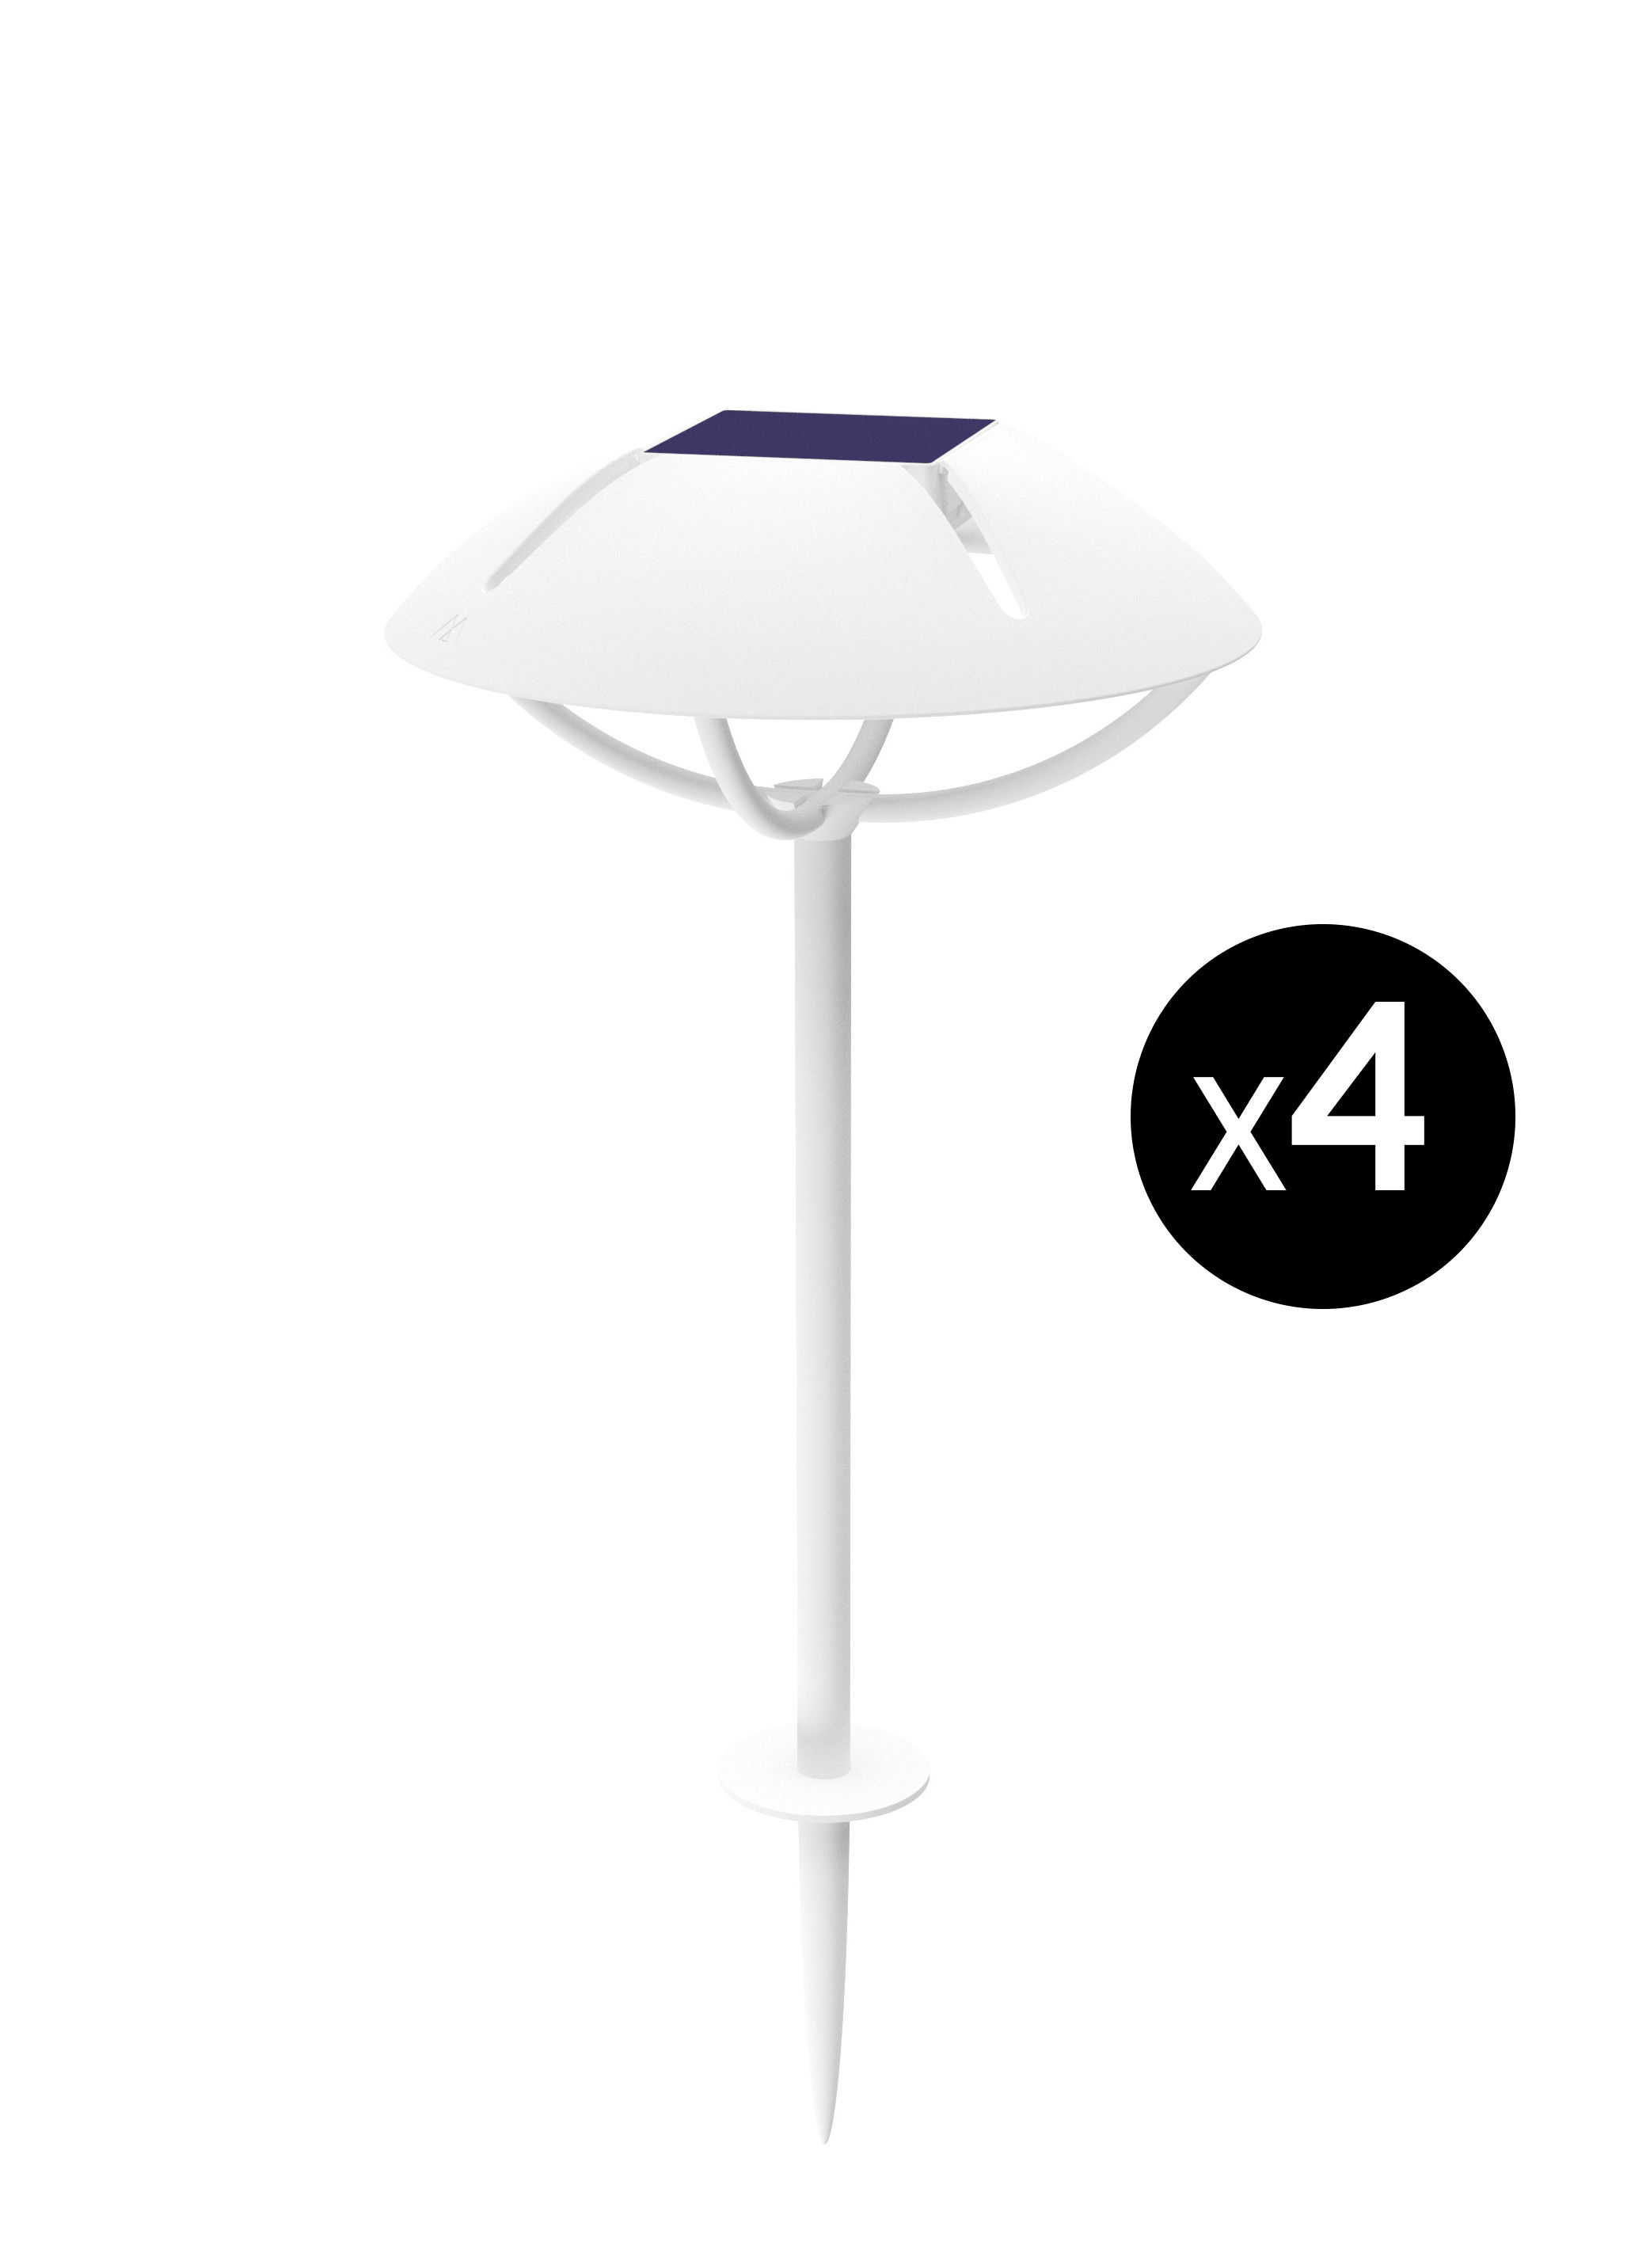 Lighting - Outdoor Lighting - Parabole LED Solar lamp - / to be planted - Set of 4 by Maiori - White - Lacquered aluminium